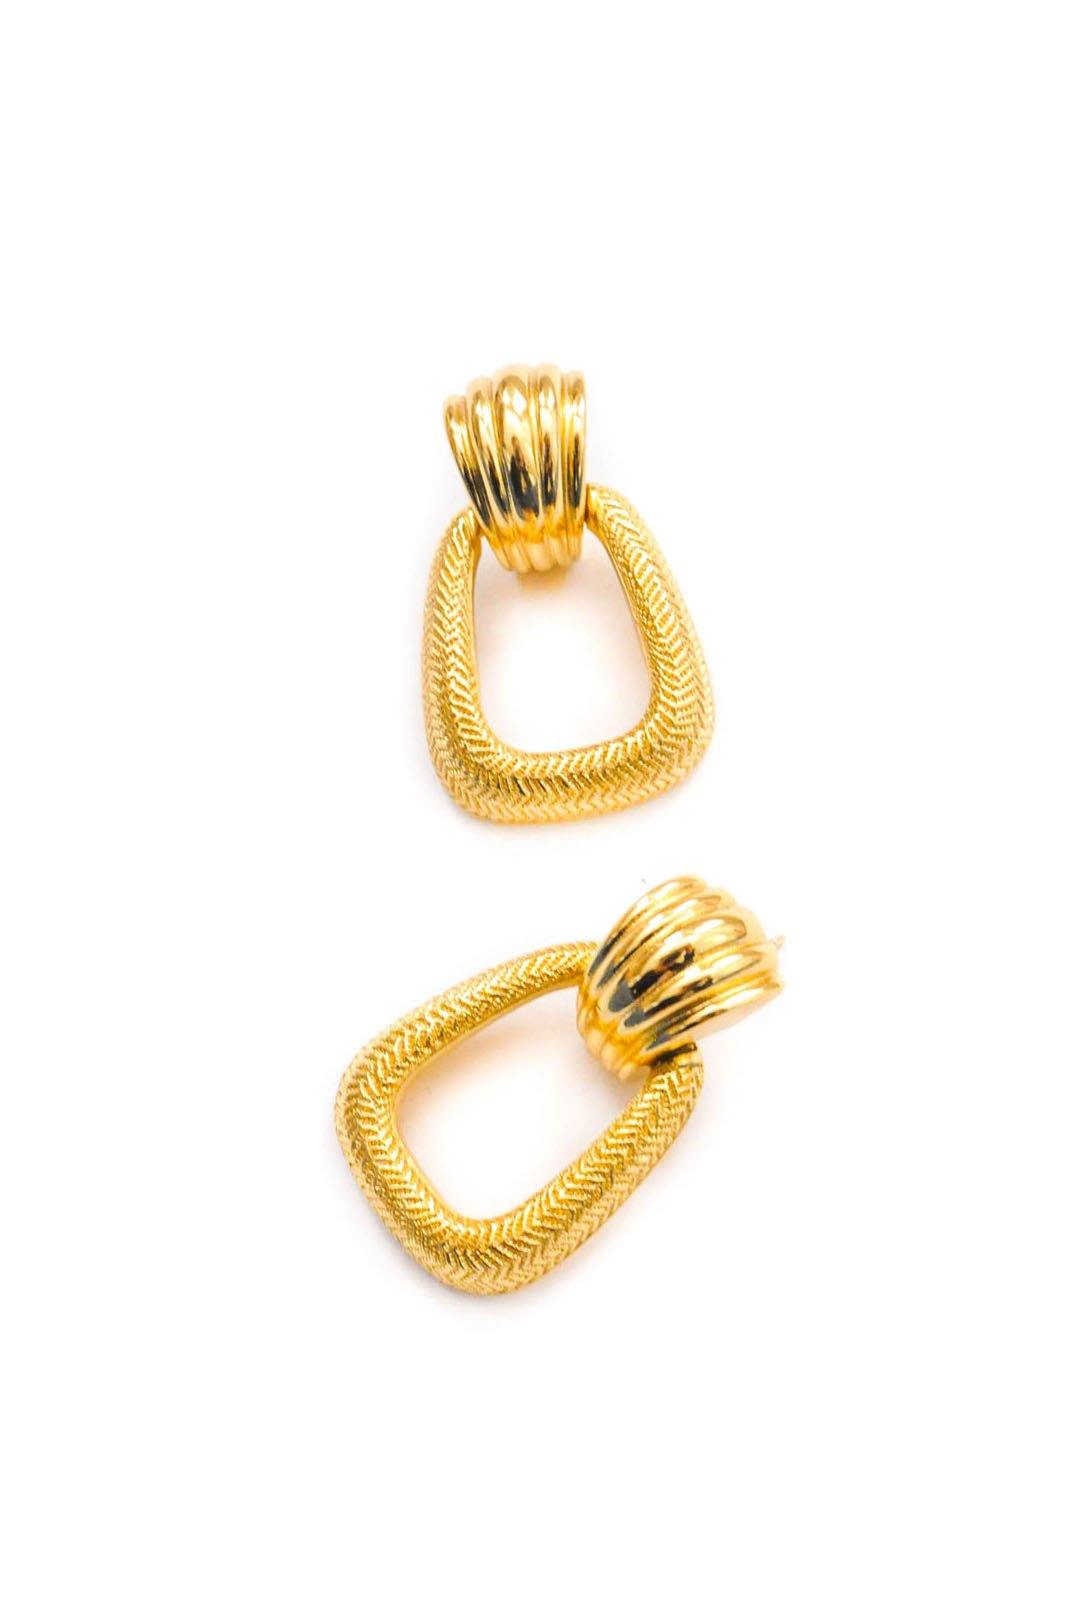 Christian Dior Textured Drop Hoop Pierced Earrings - Sweet & Spark